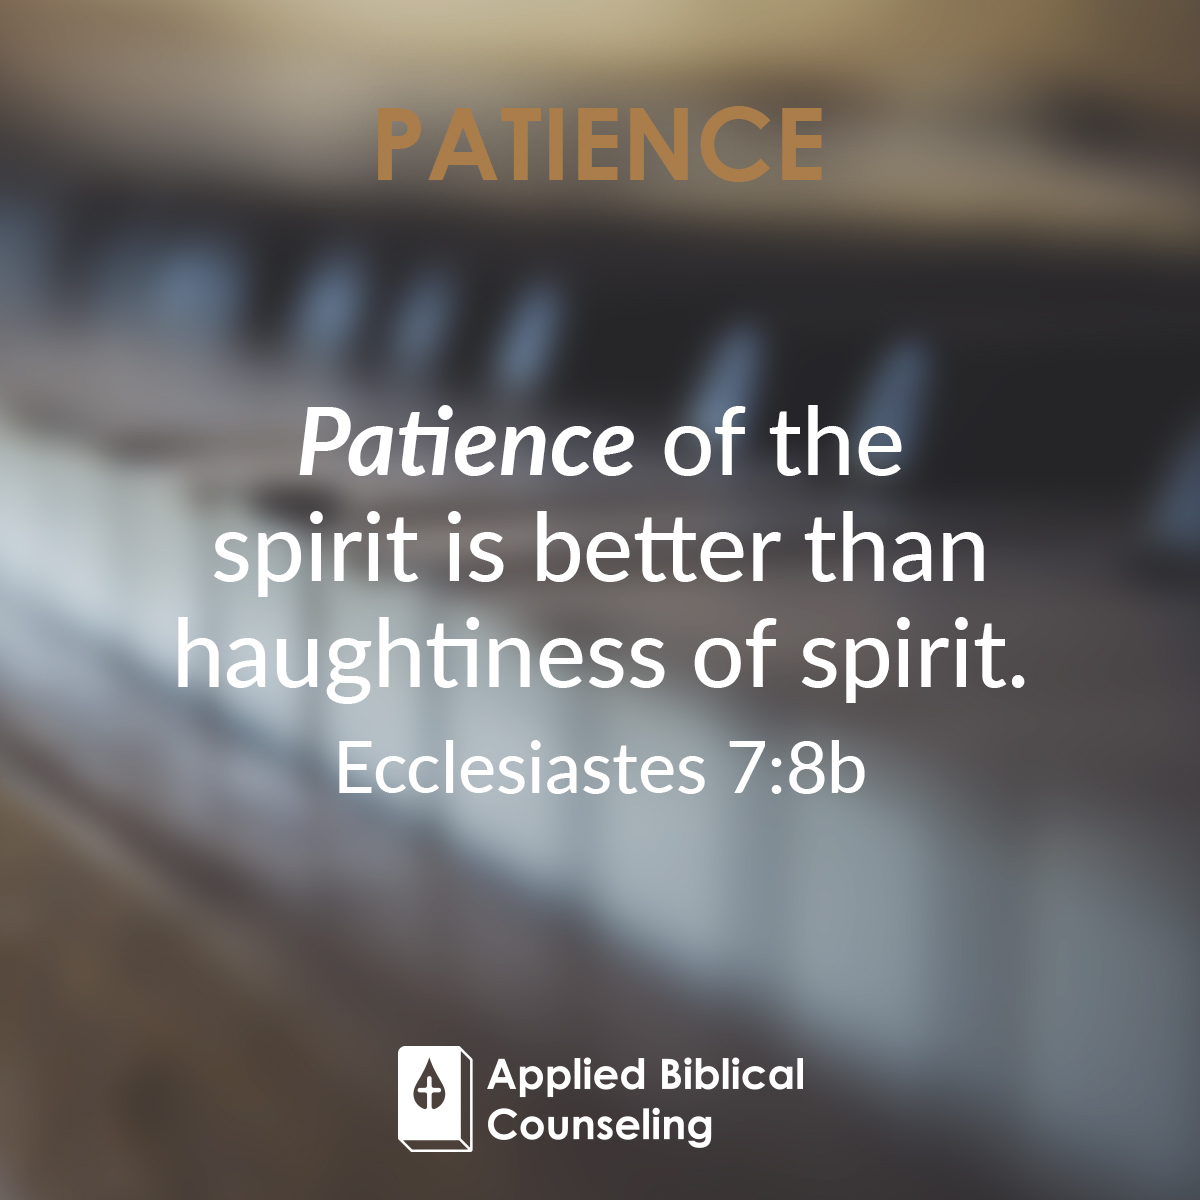 Applied Biblical Counseling Facebook w26 Patience 5